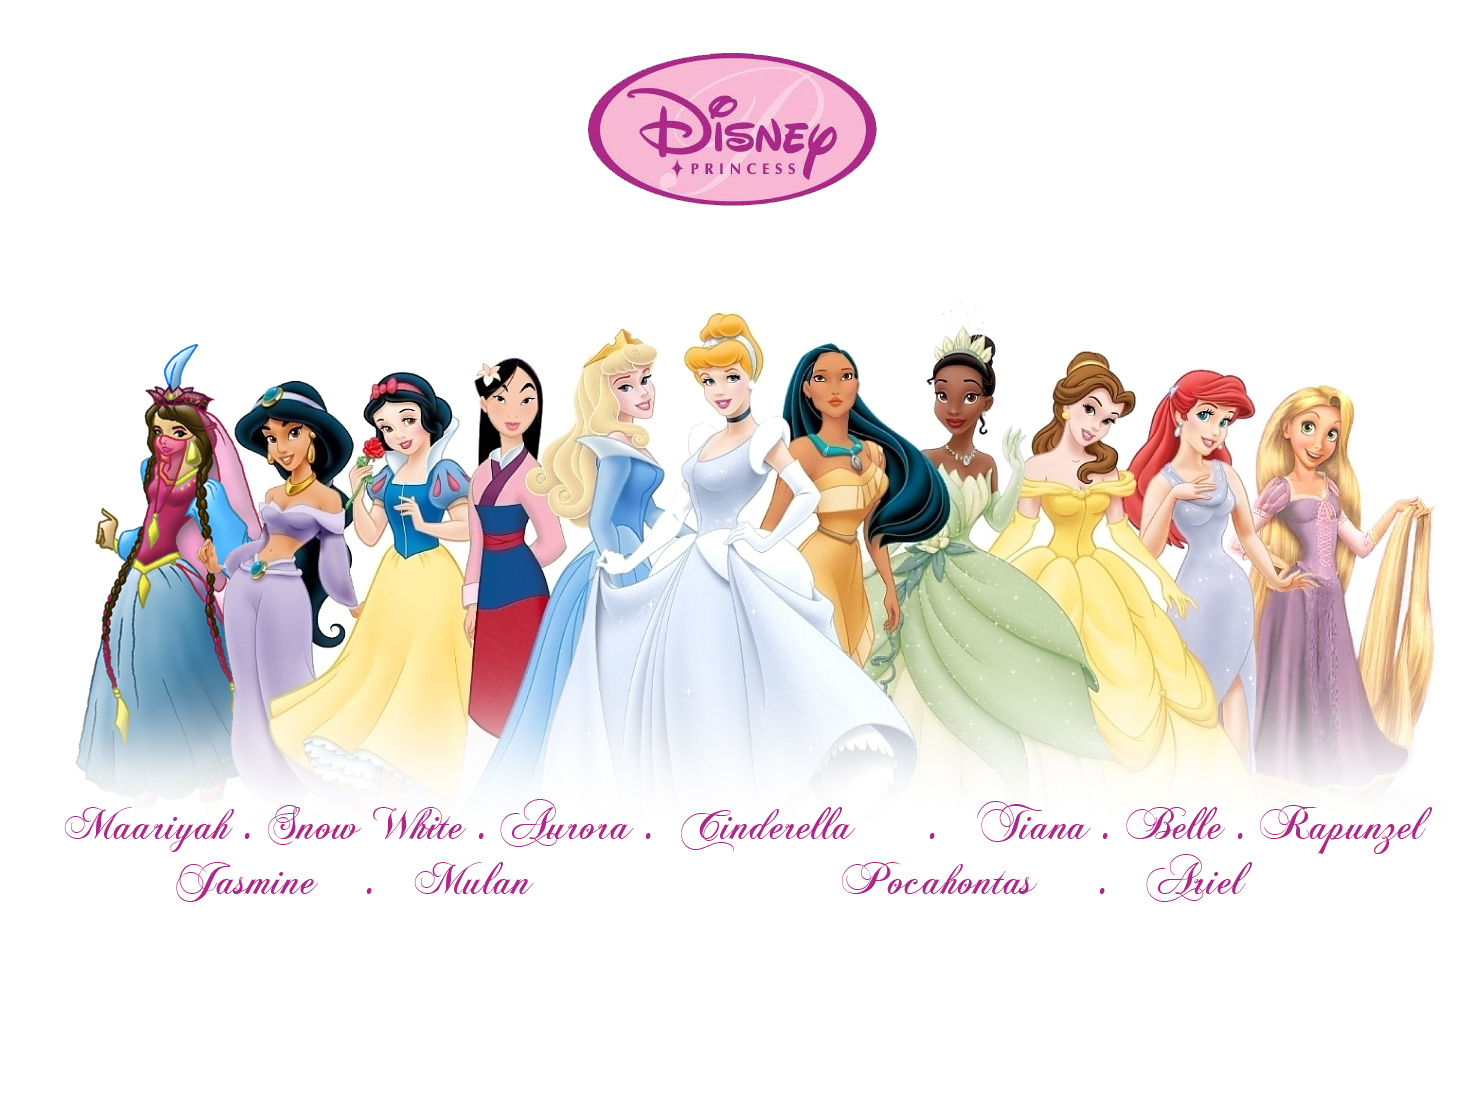 Disney Princess With Names Picture Disney Princess With Names Image Disney Princess With Names